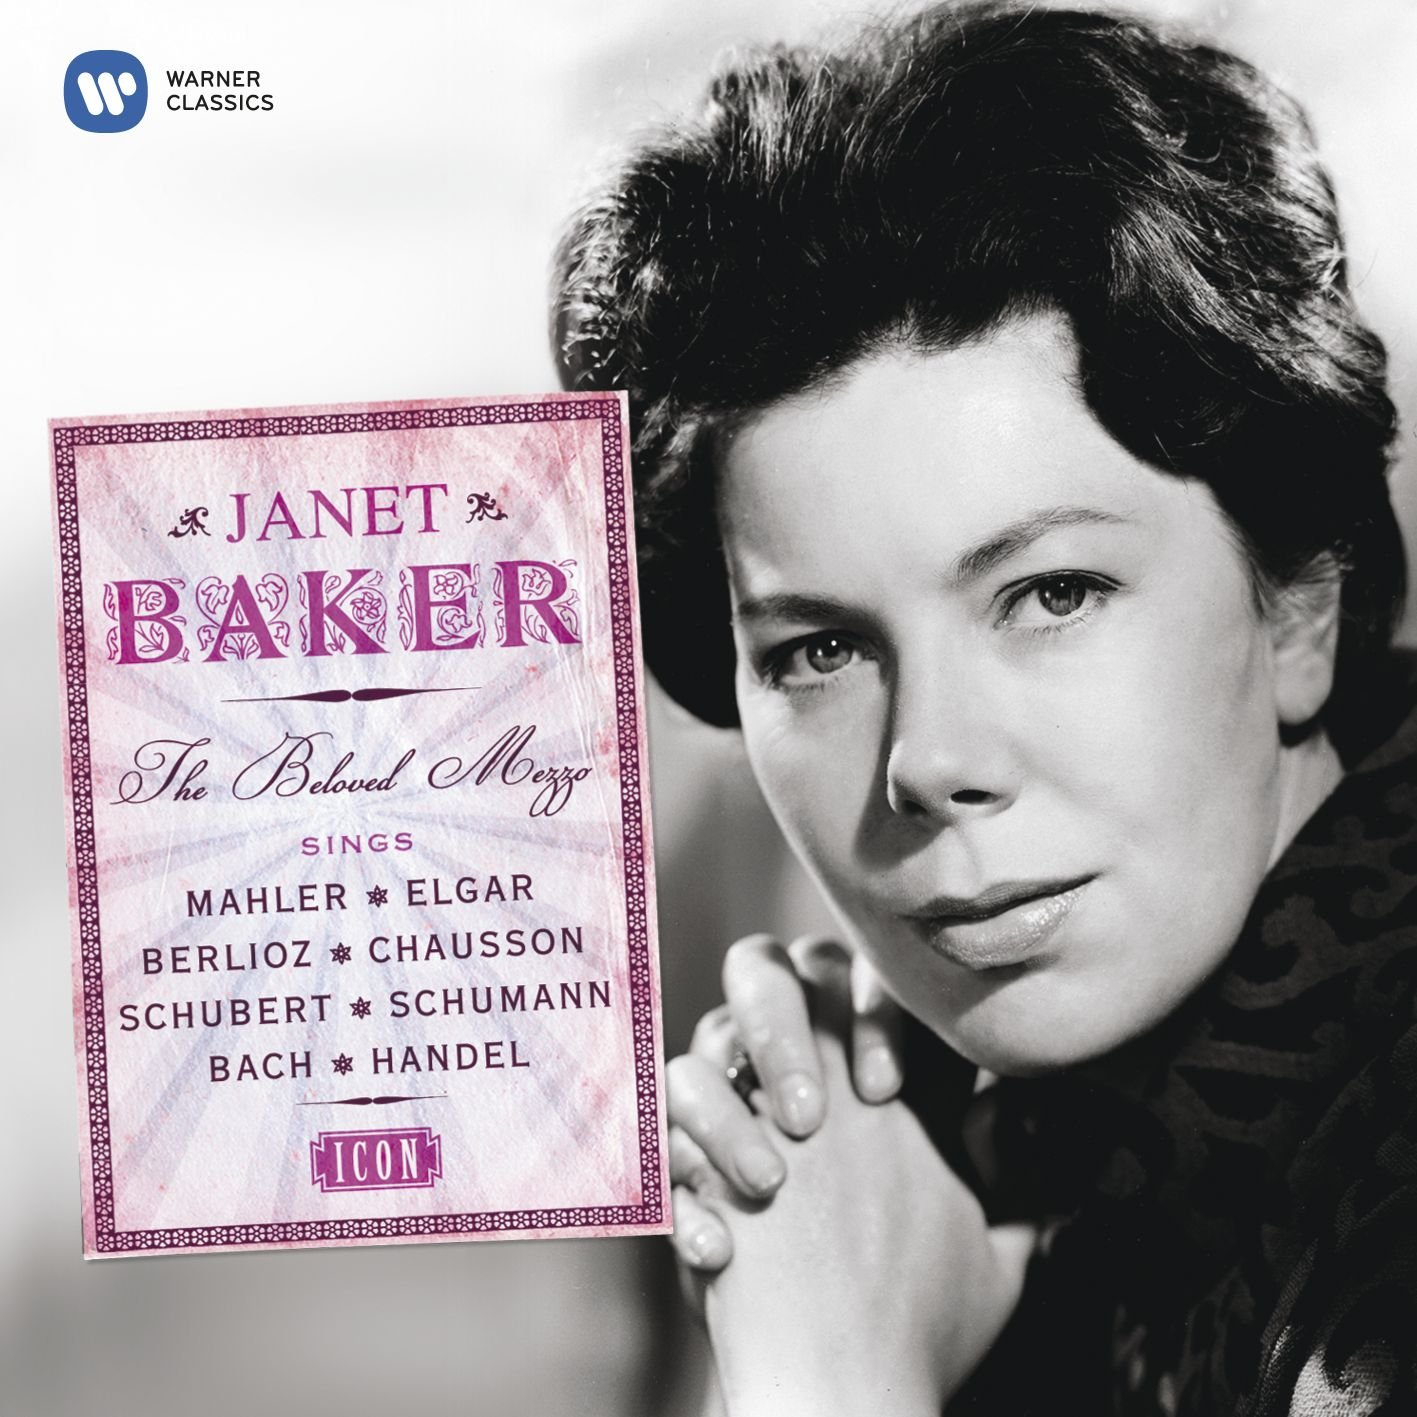 Icon: Janet Baker by Warner Classics